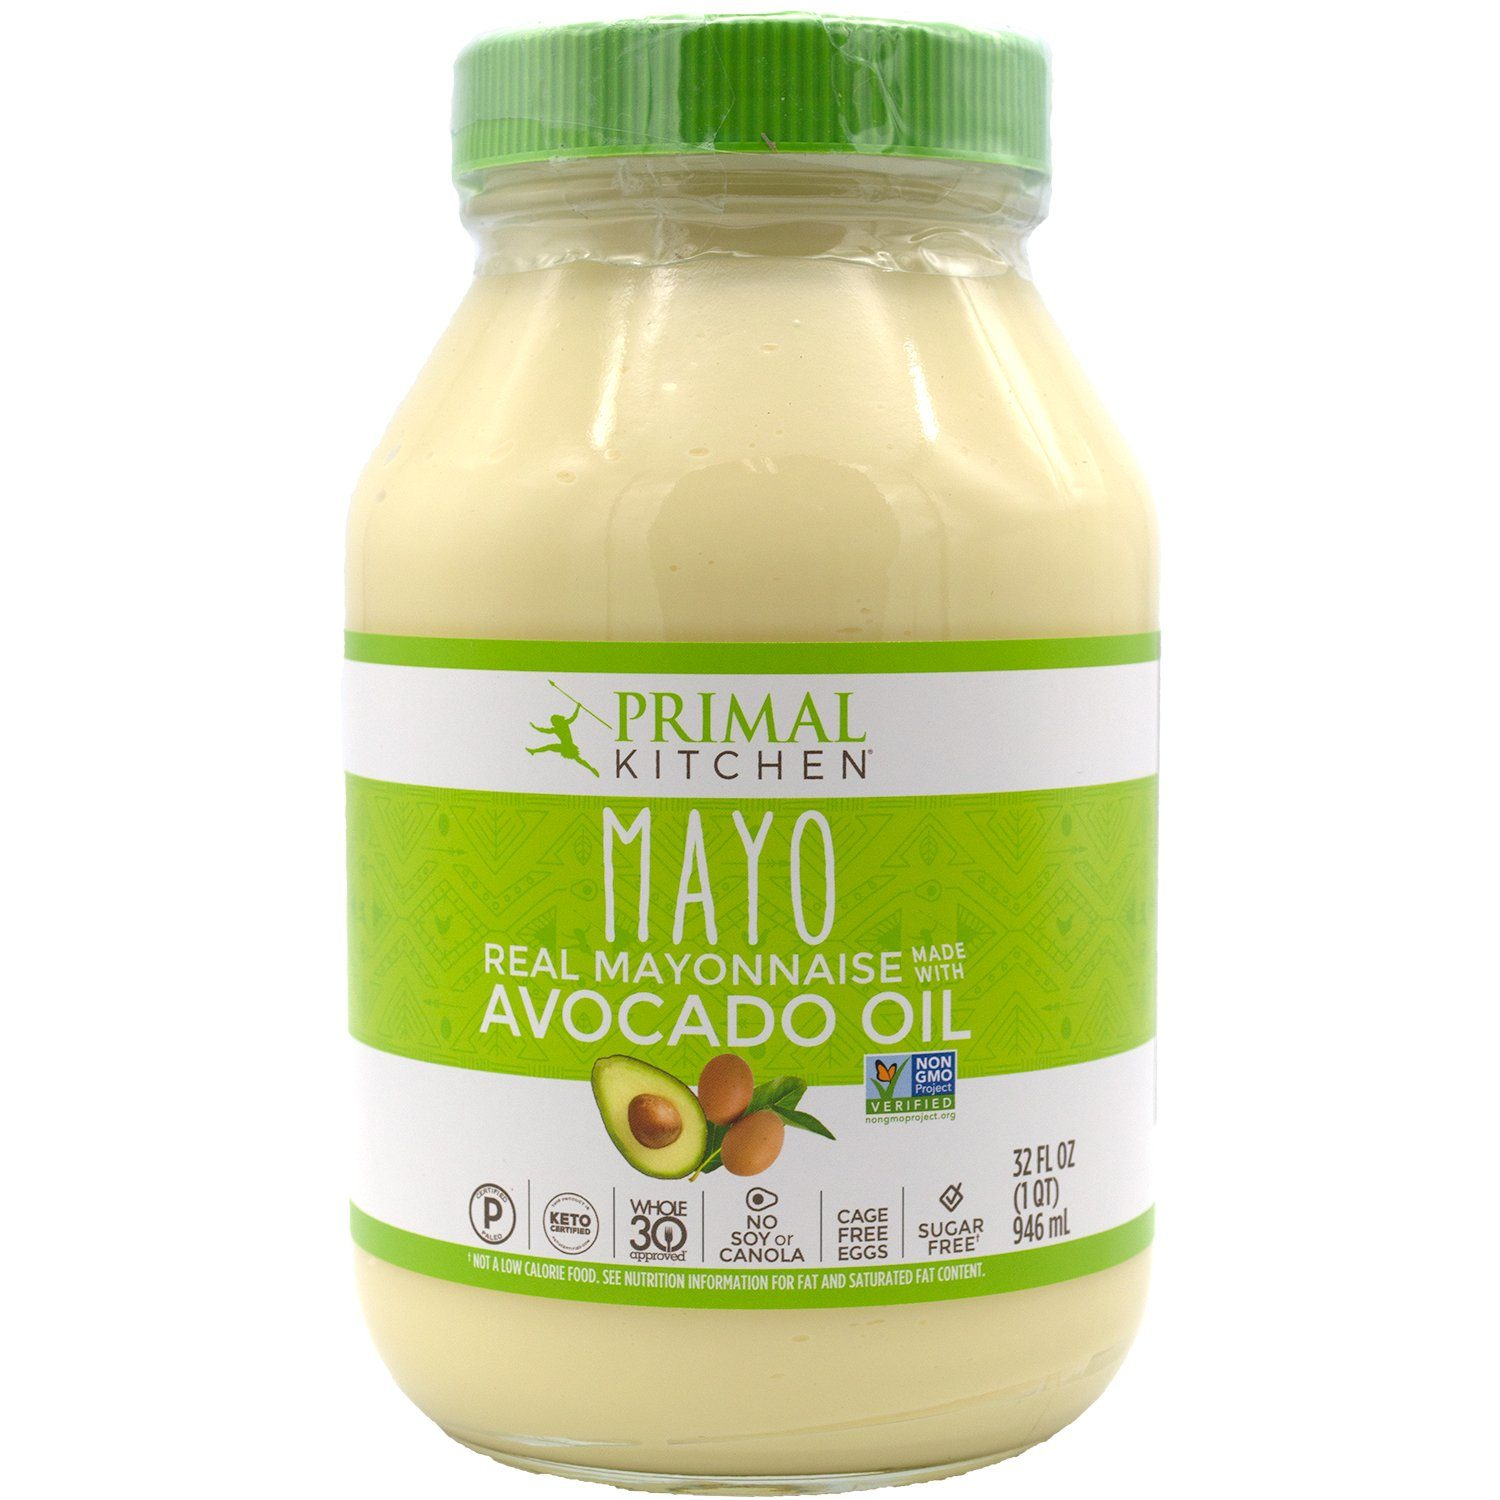 Primal Kitchen Mayo with Avocado Oil Primal Kitchen 32 Fluid Ounce